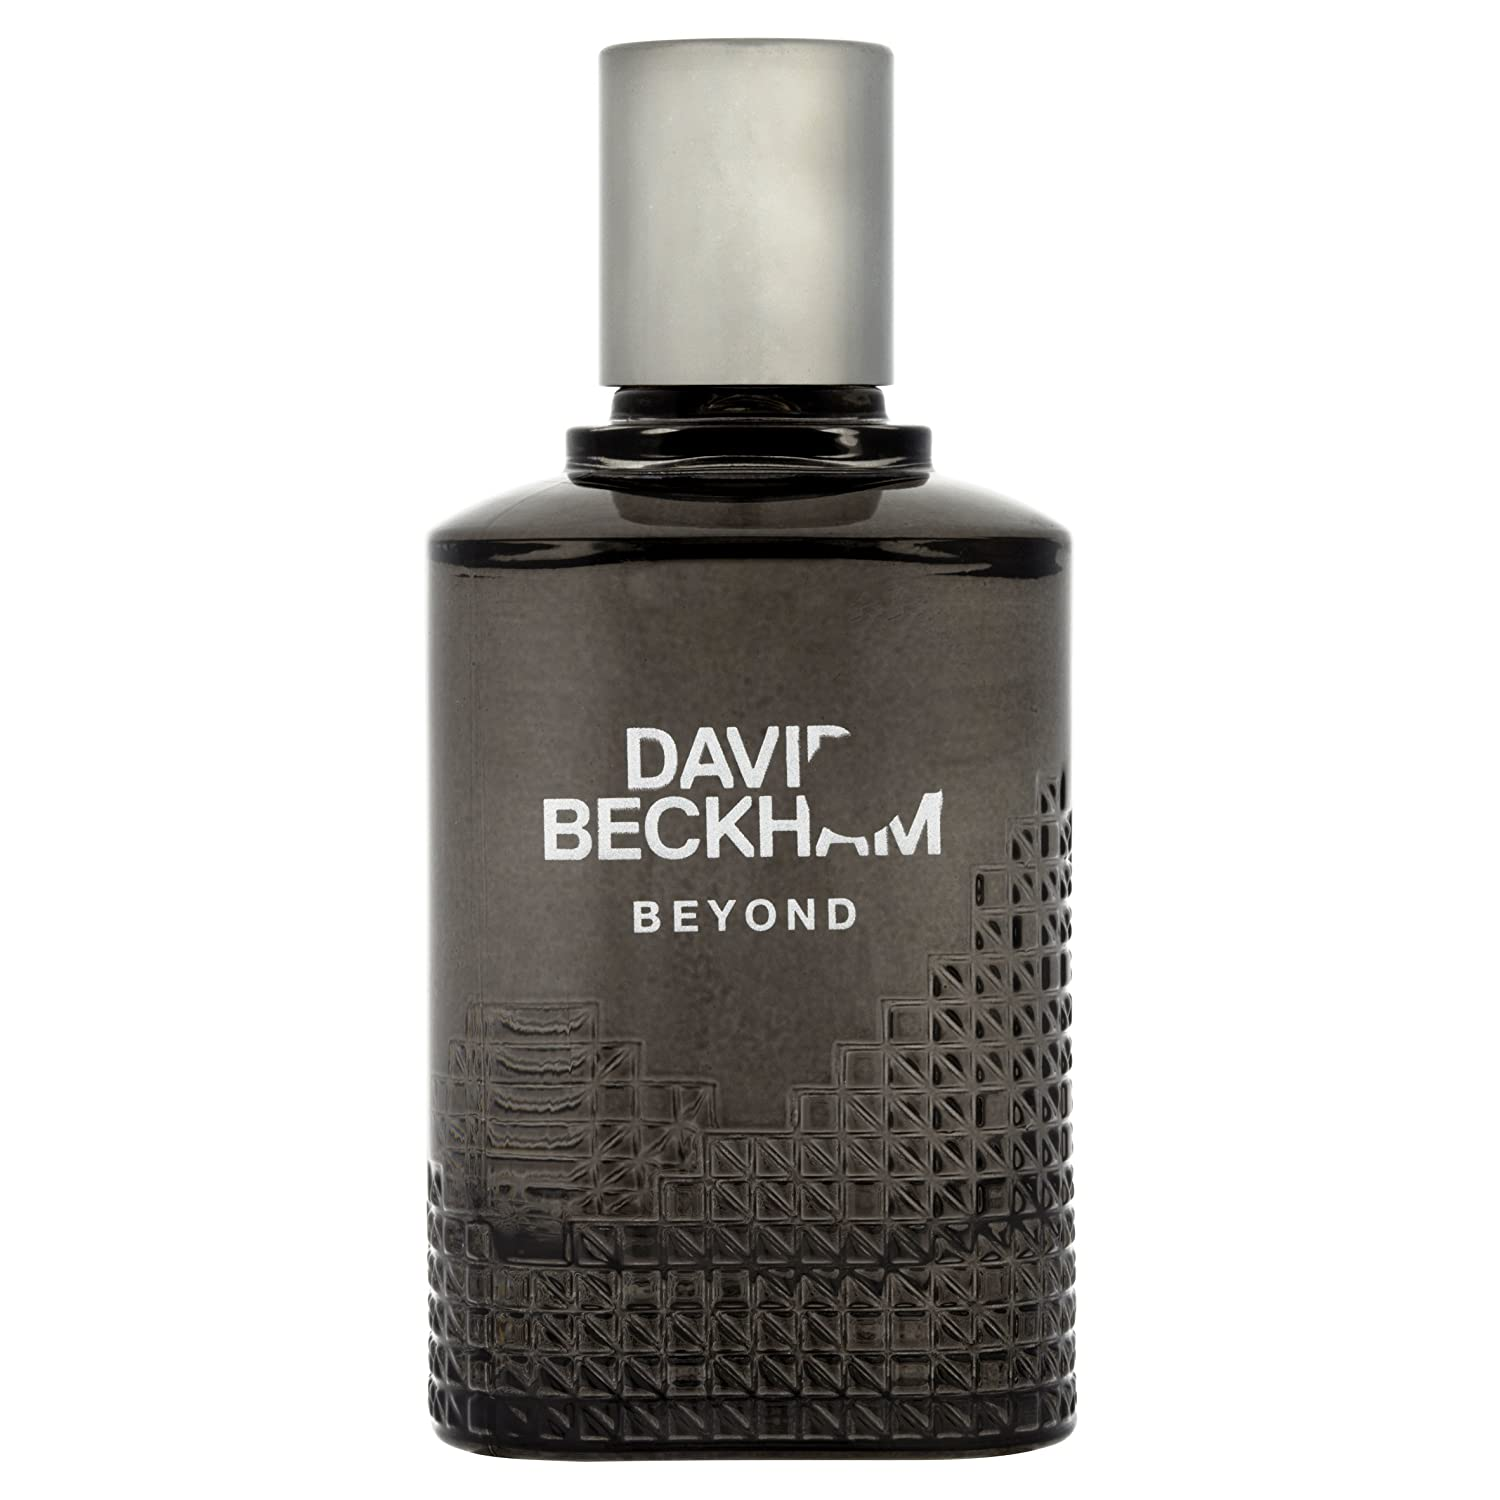 Beckham Beyond After Shave 60 ml Coty 32779758000